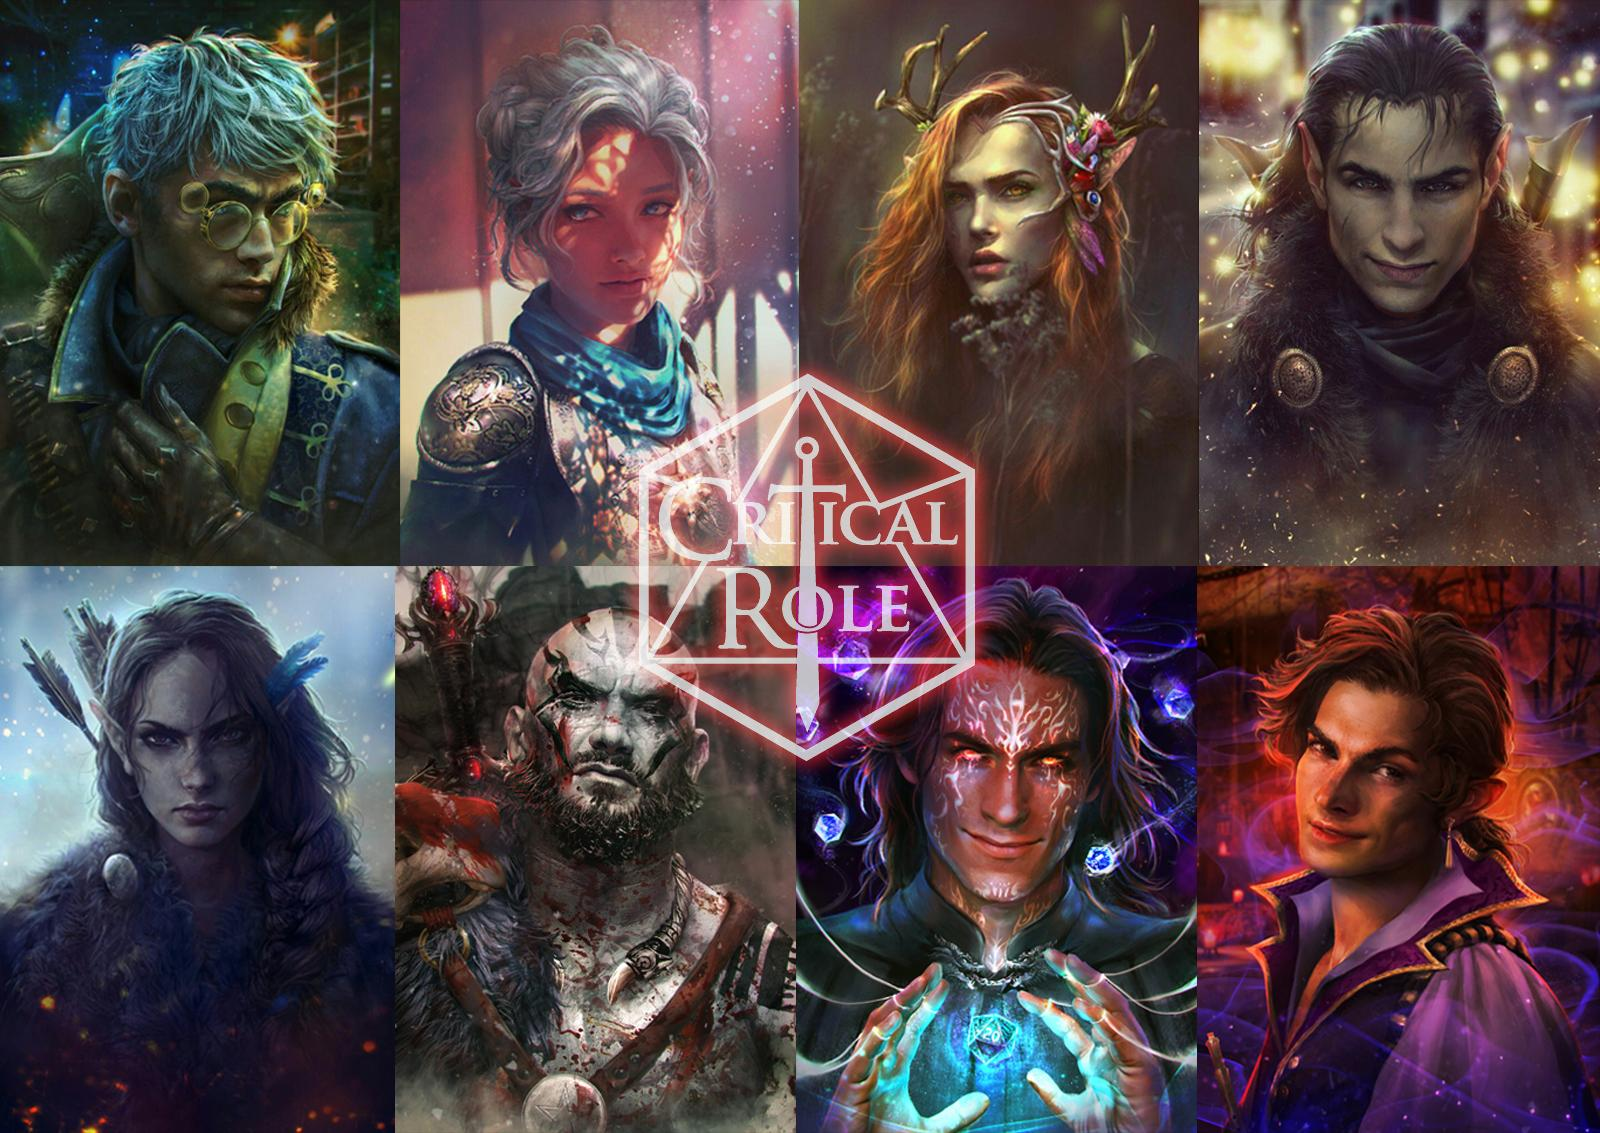 Download Critical Role Wallpaper Hd Backgrounds Download Itl Cat I was one of 70 artists in the criticla role 50th episode fan art gallery. download critical role wallpaper hd